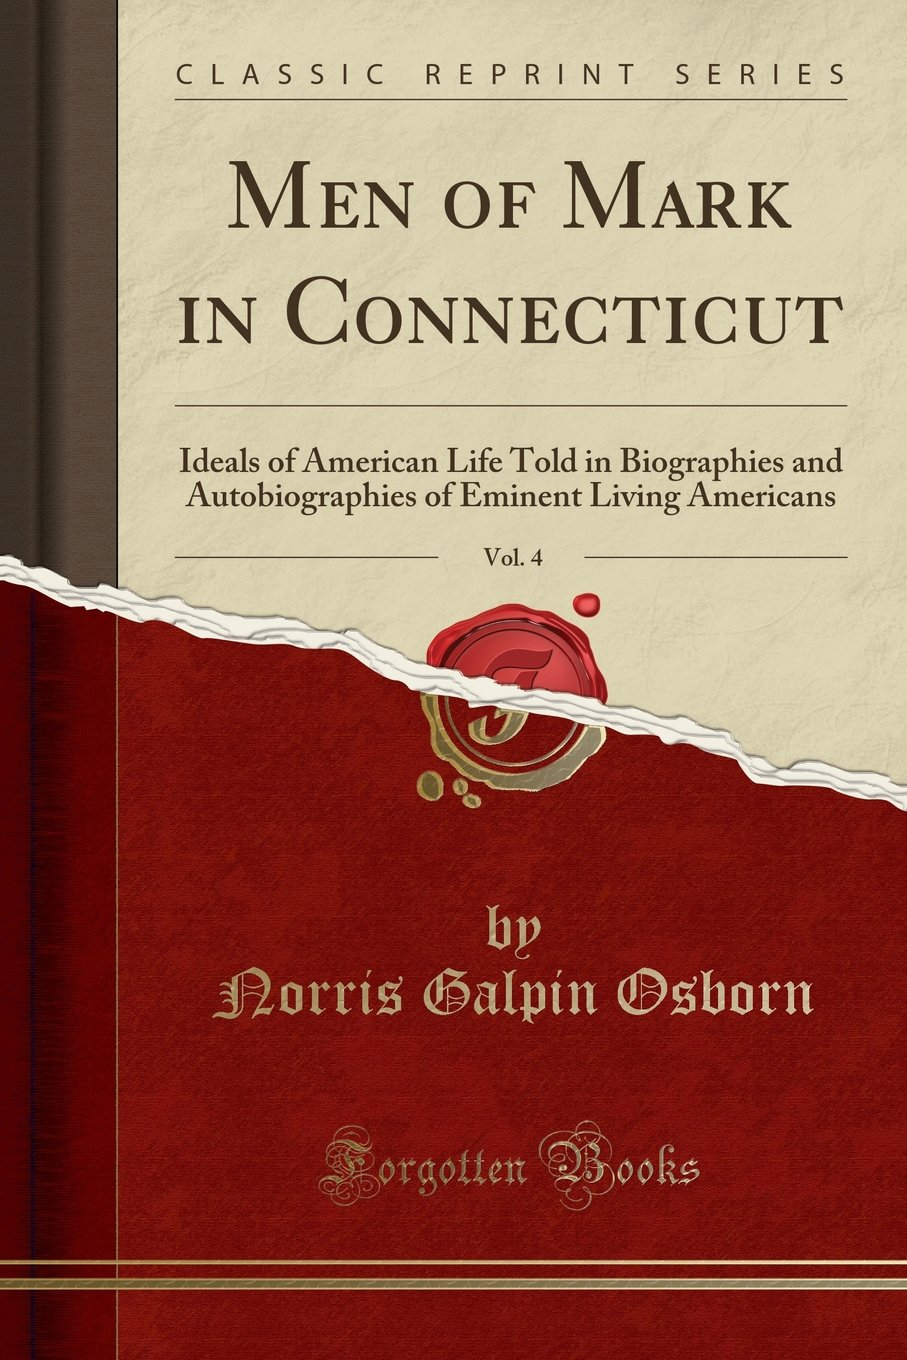 Men of Mark in Connecticut, Vol. 4: Ideals of American Life Told in Biographies and Autobiographies of Eminent Living Americans (Classic Reprint) PDF